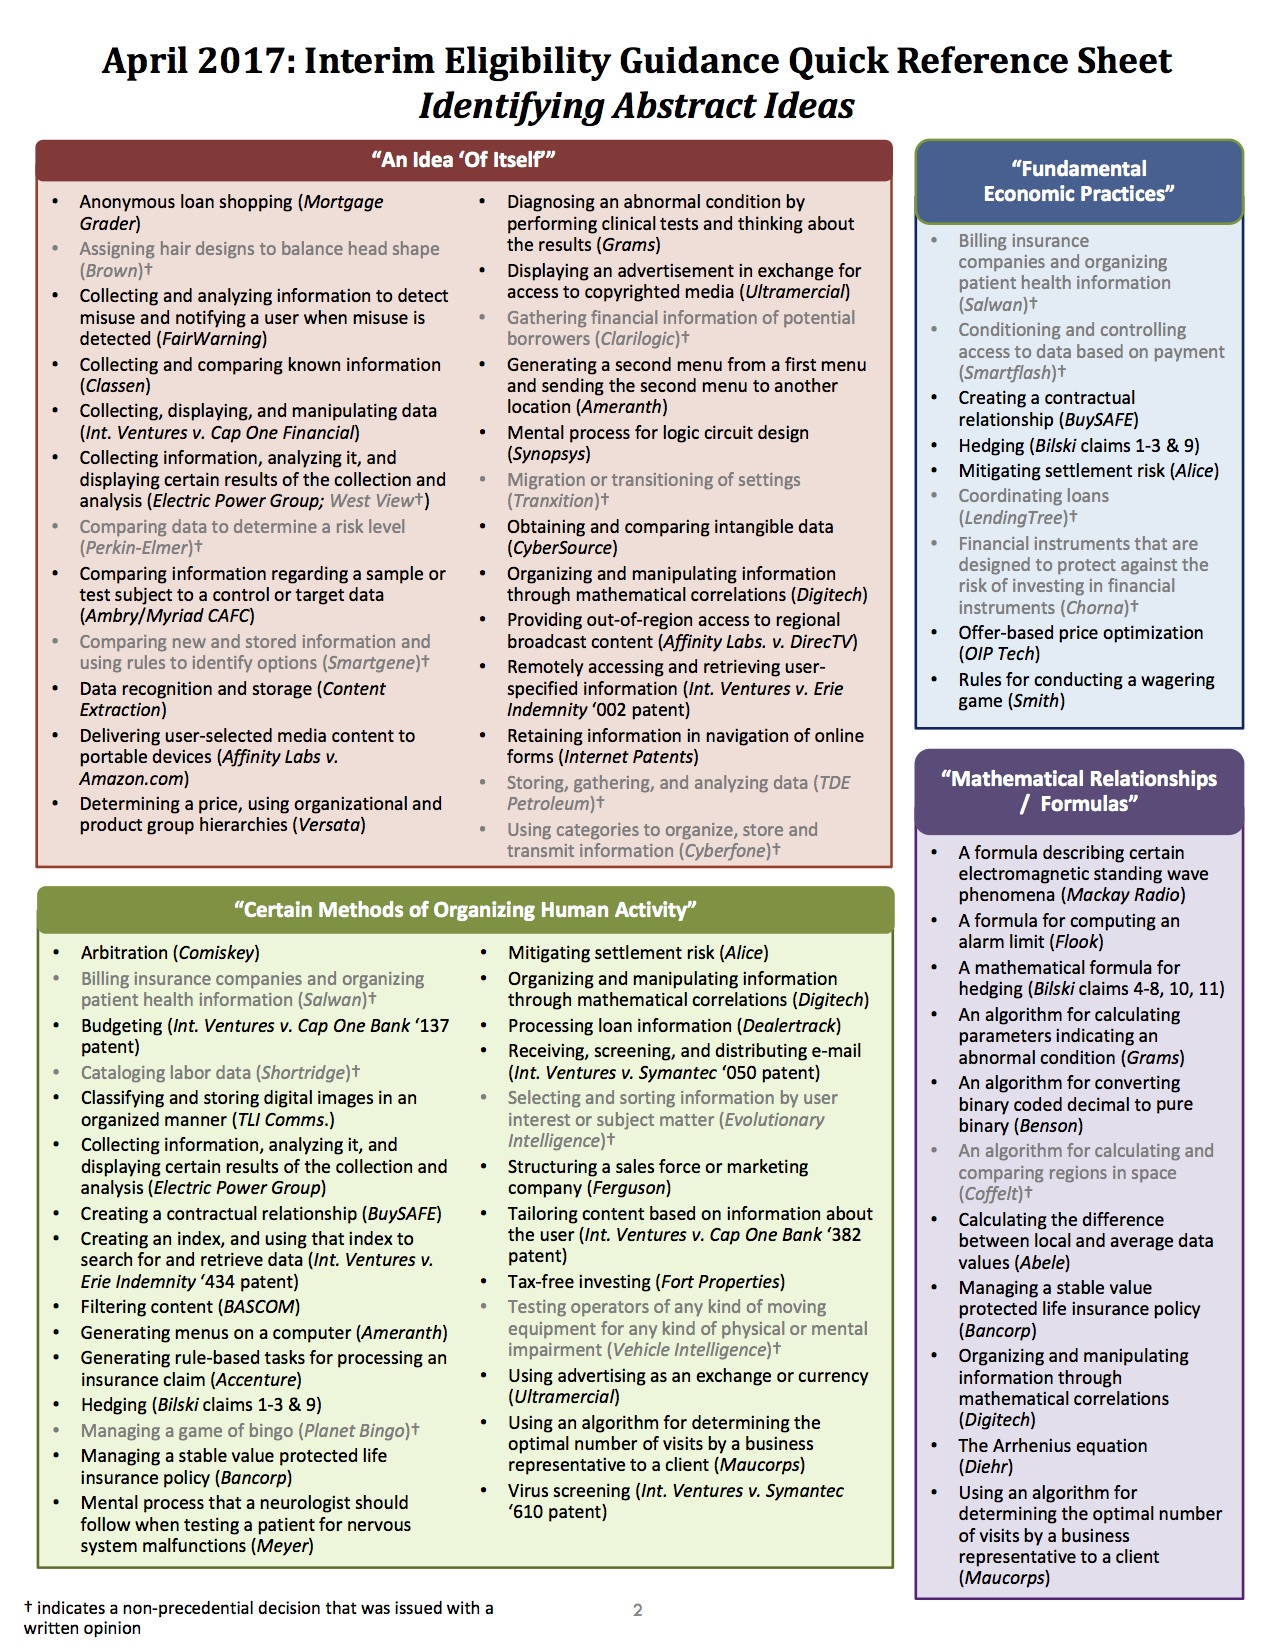 New Uspto Quick Reference Sheet On Patent Eligibility 717 Madison Place